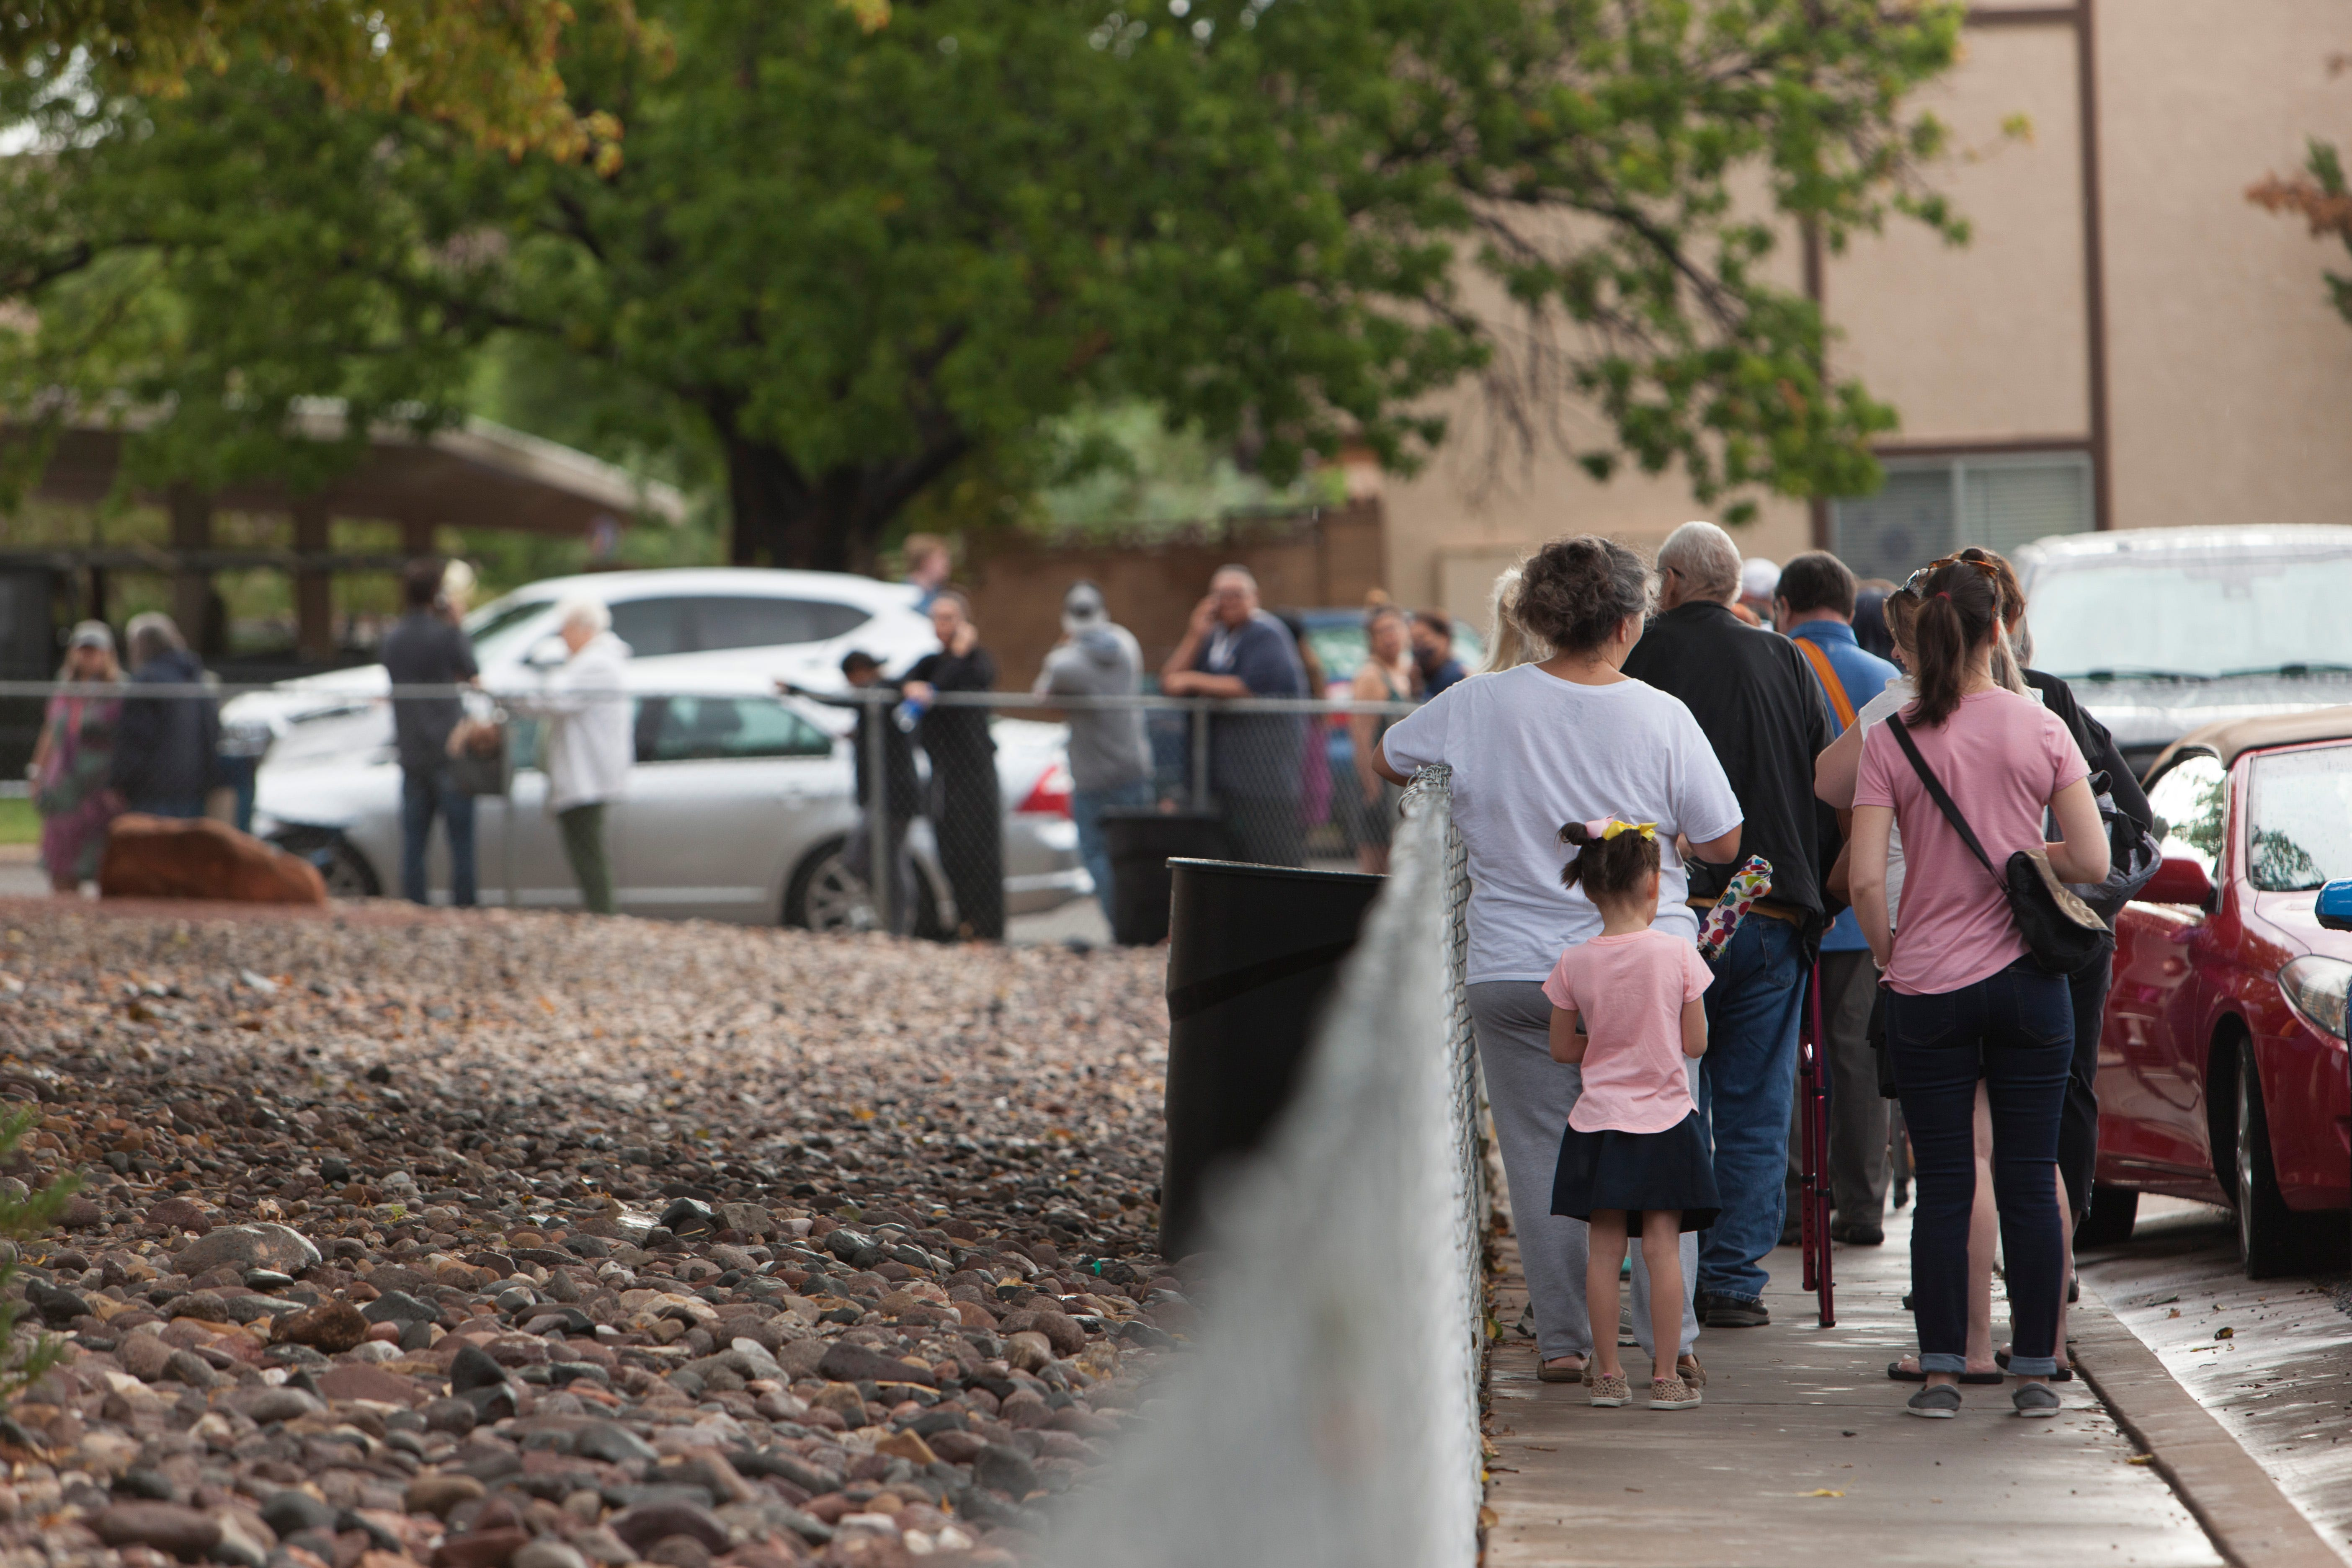 St. George residents file into the St. George Housing Authority to apply for housing assistance Wednesday, Sept. 1, 2021. Some waited through the night in raincoats and camp chairs to hold their spots in line.